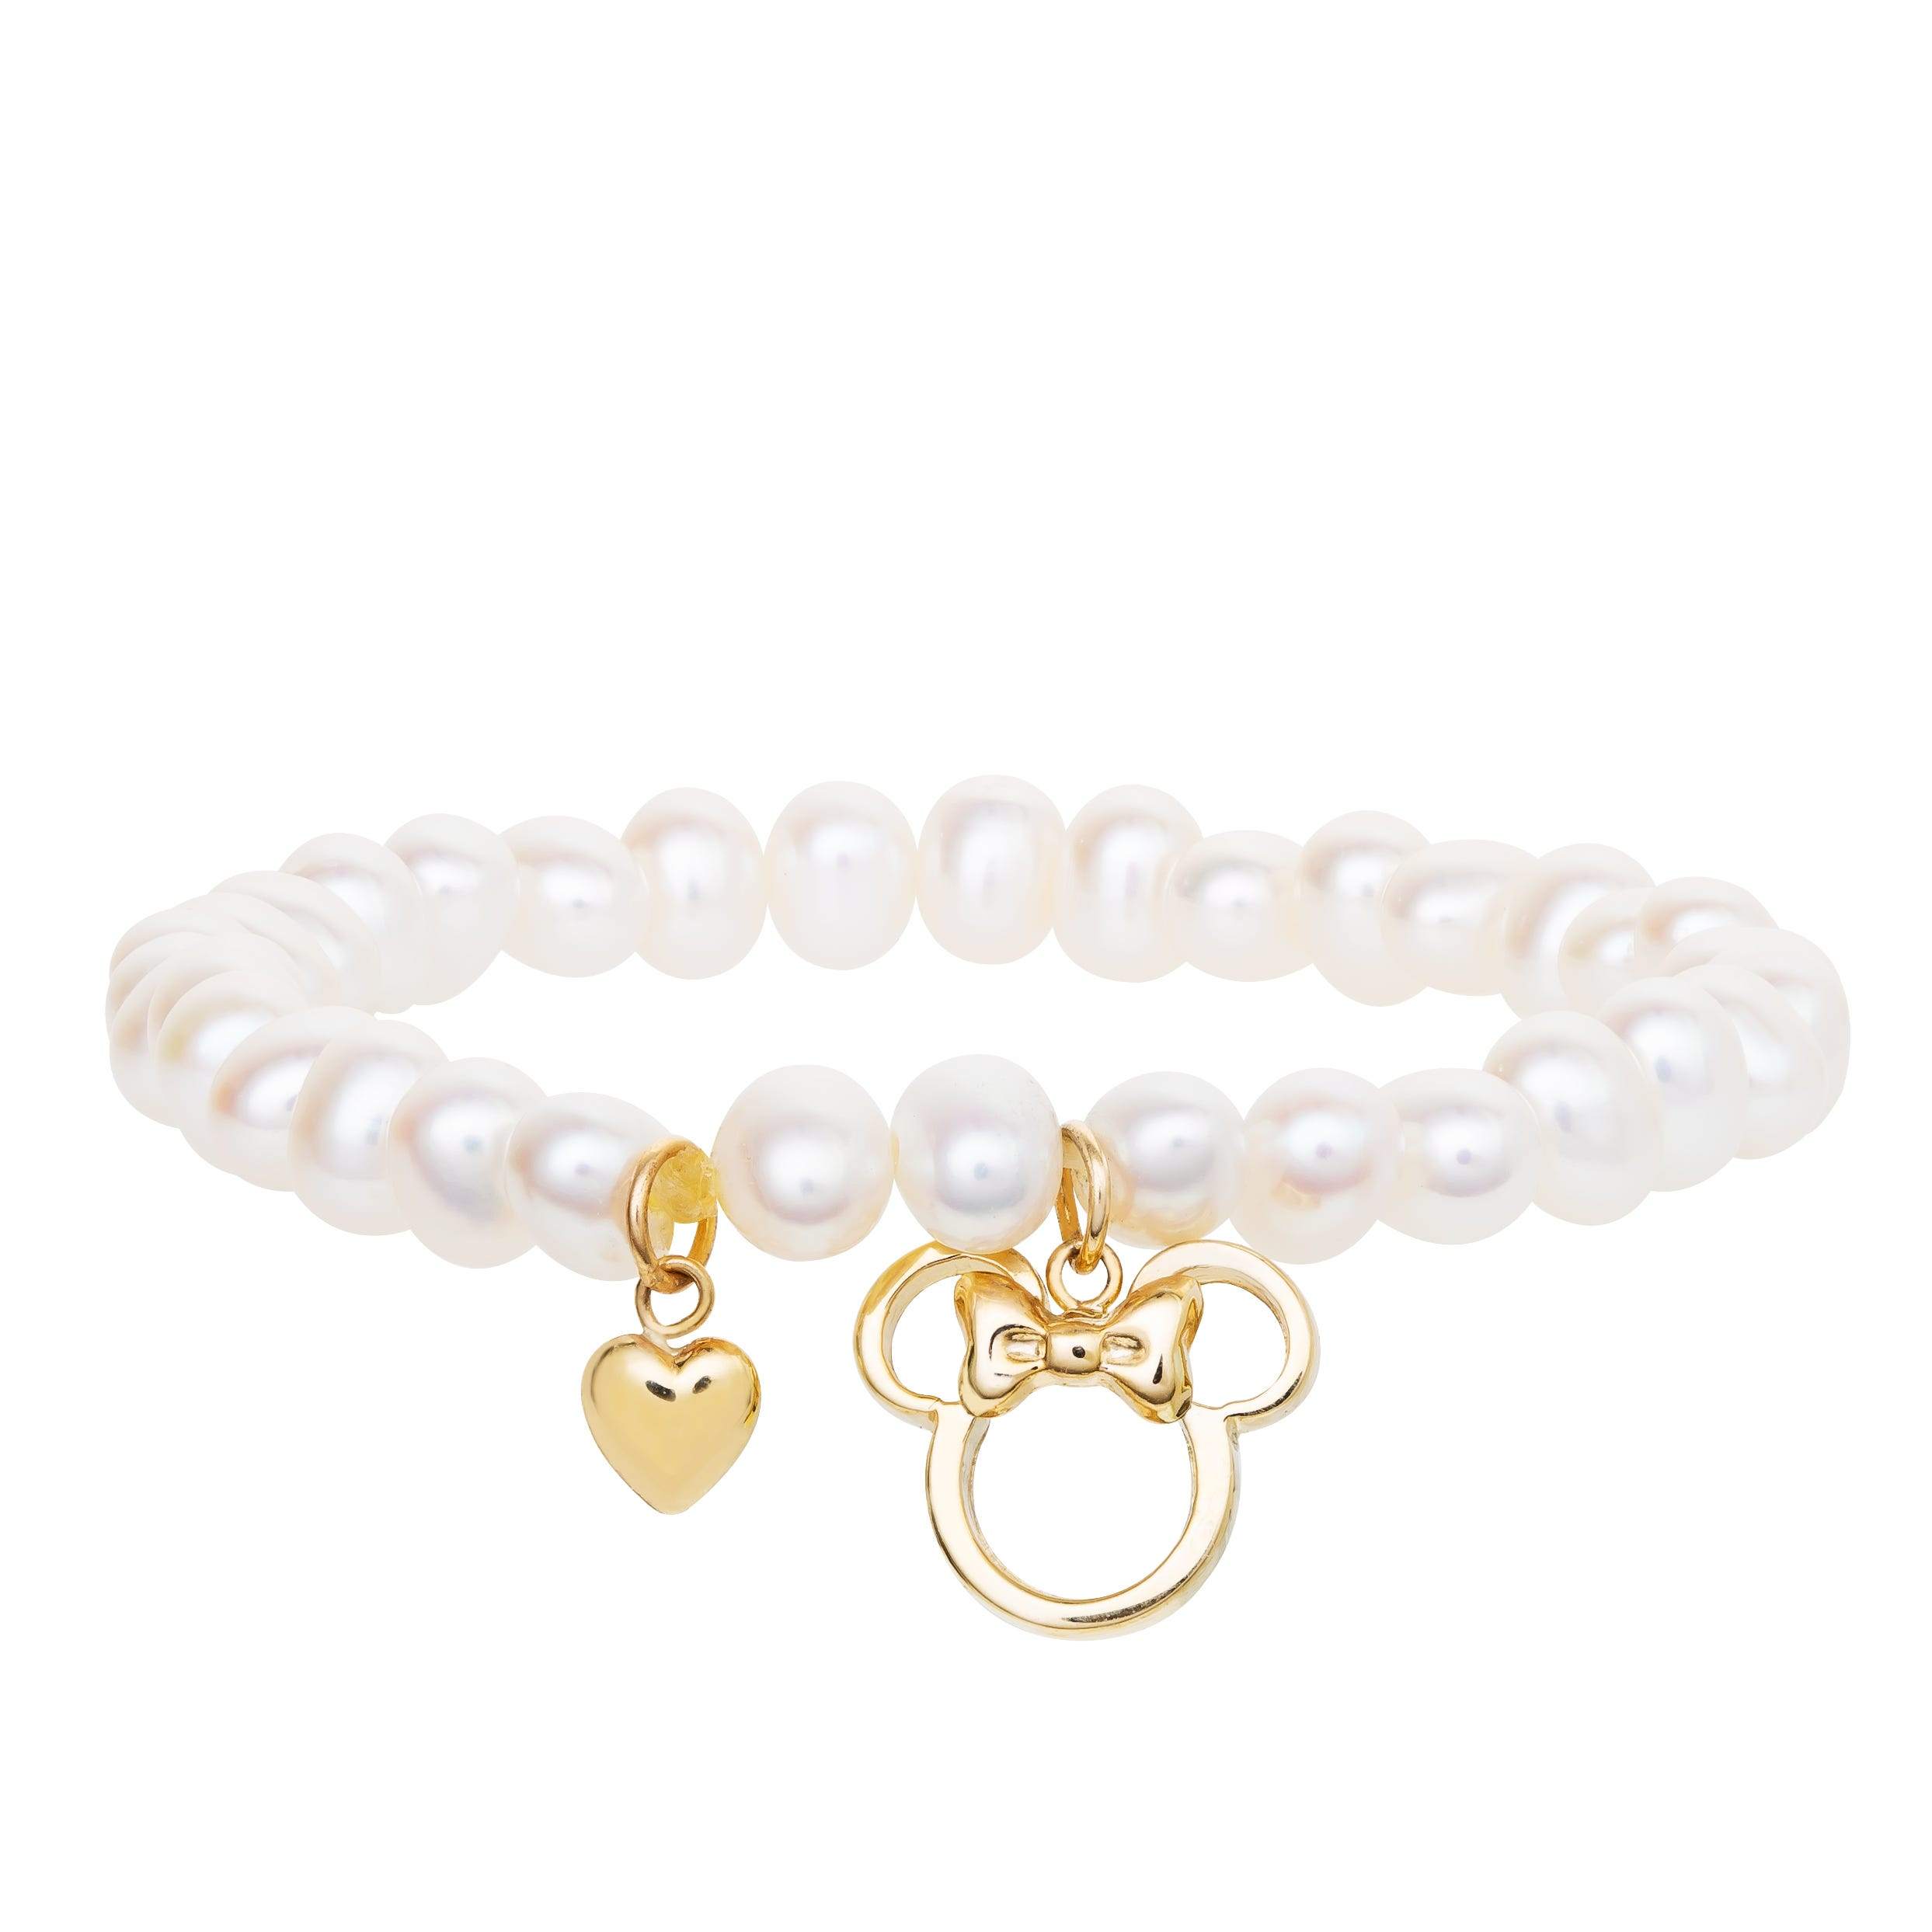 DISNEY© Minnie Mouse Children's Pearl Bracelet in 10k Yellow Gold